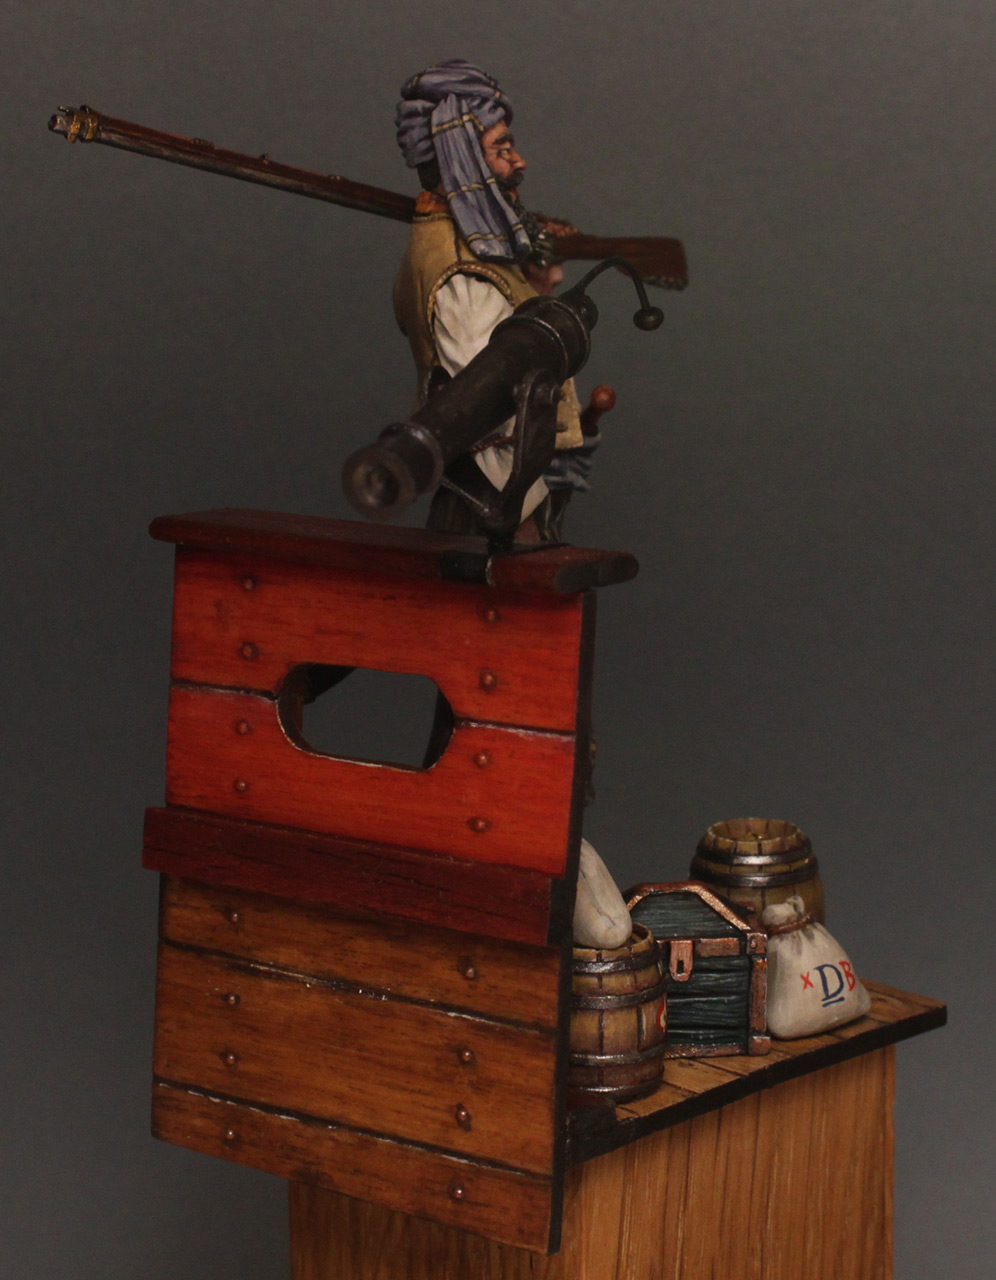 Dioramas and Vignettes: Good catch, photo #5